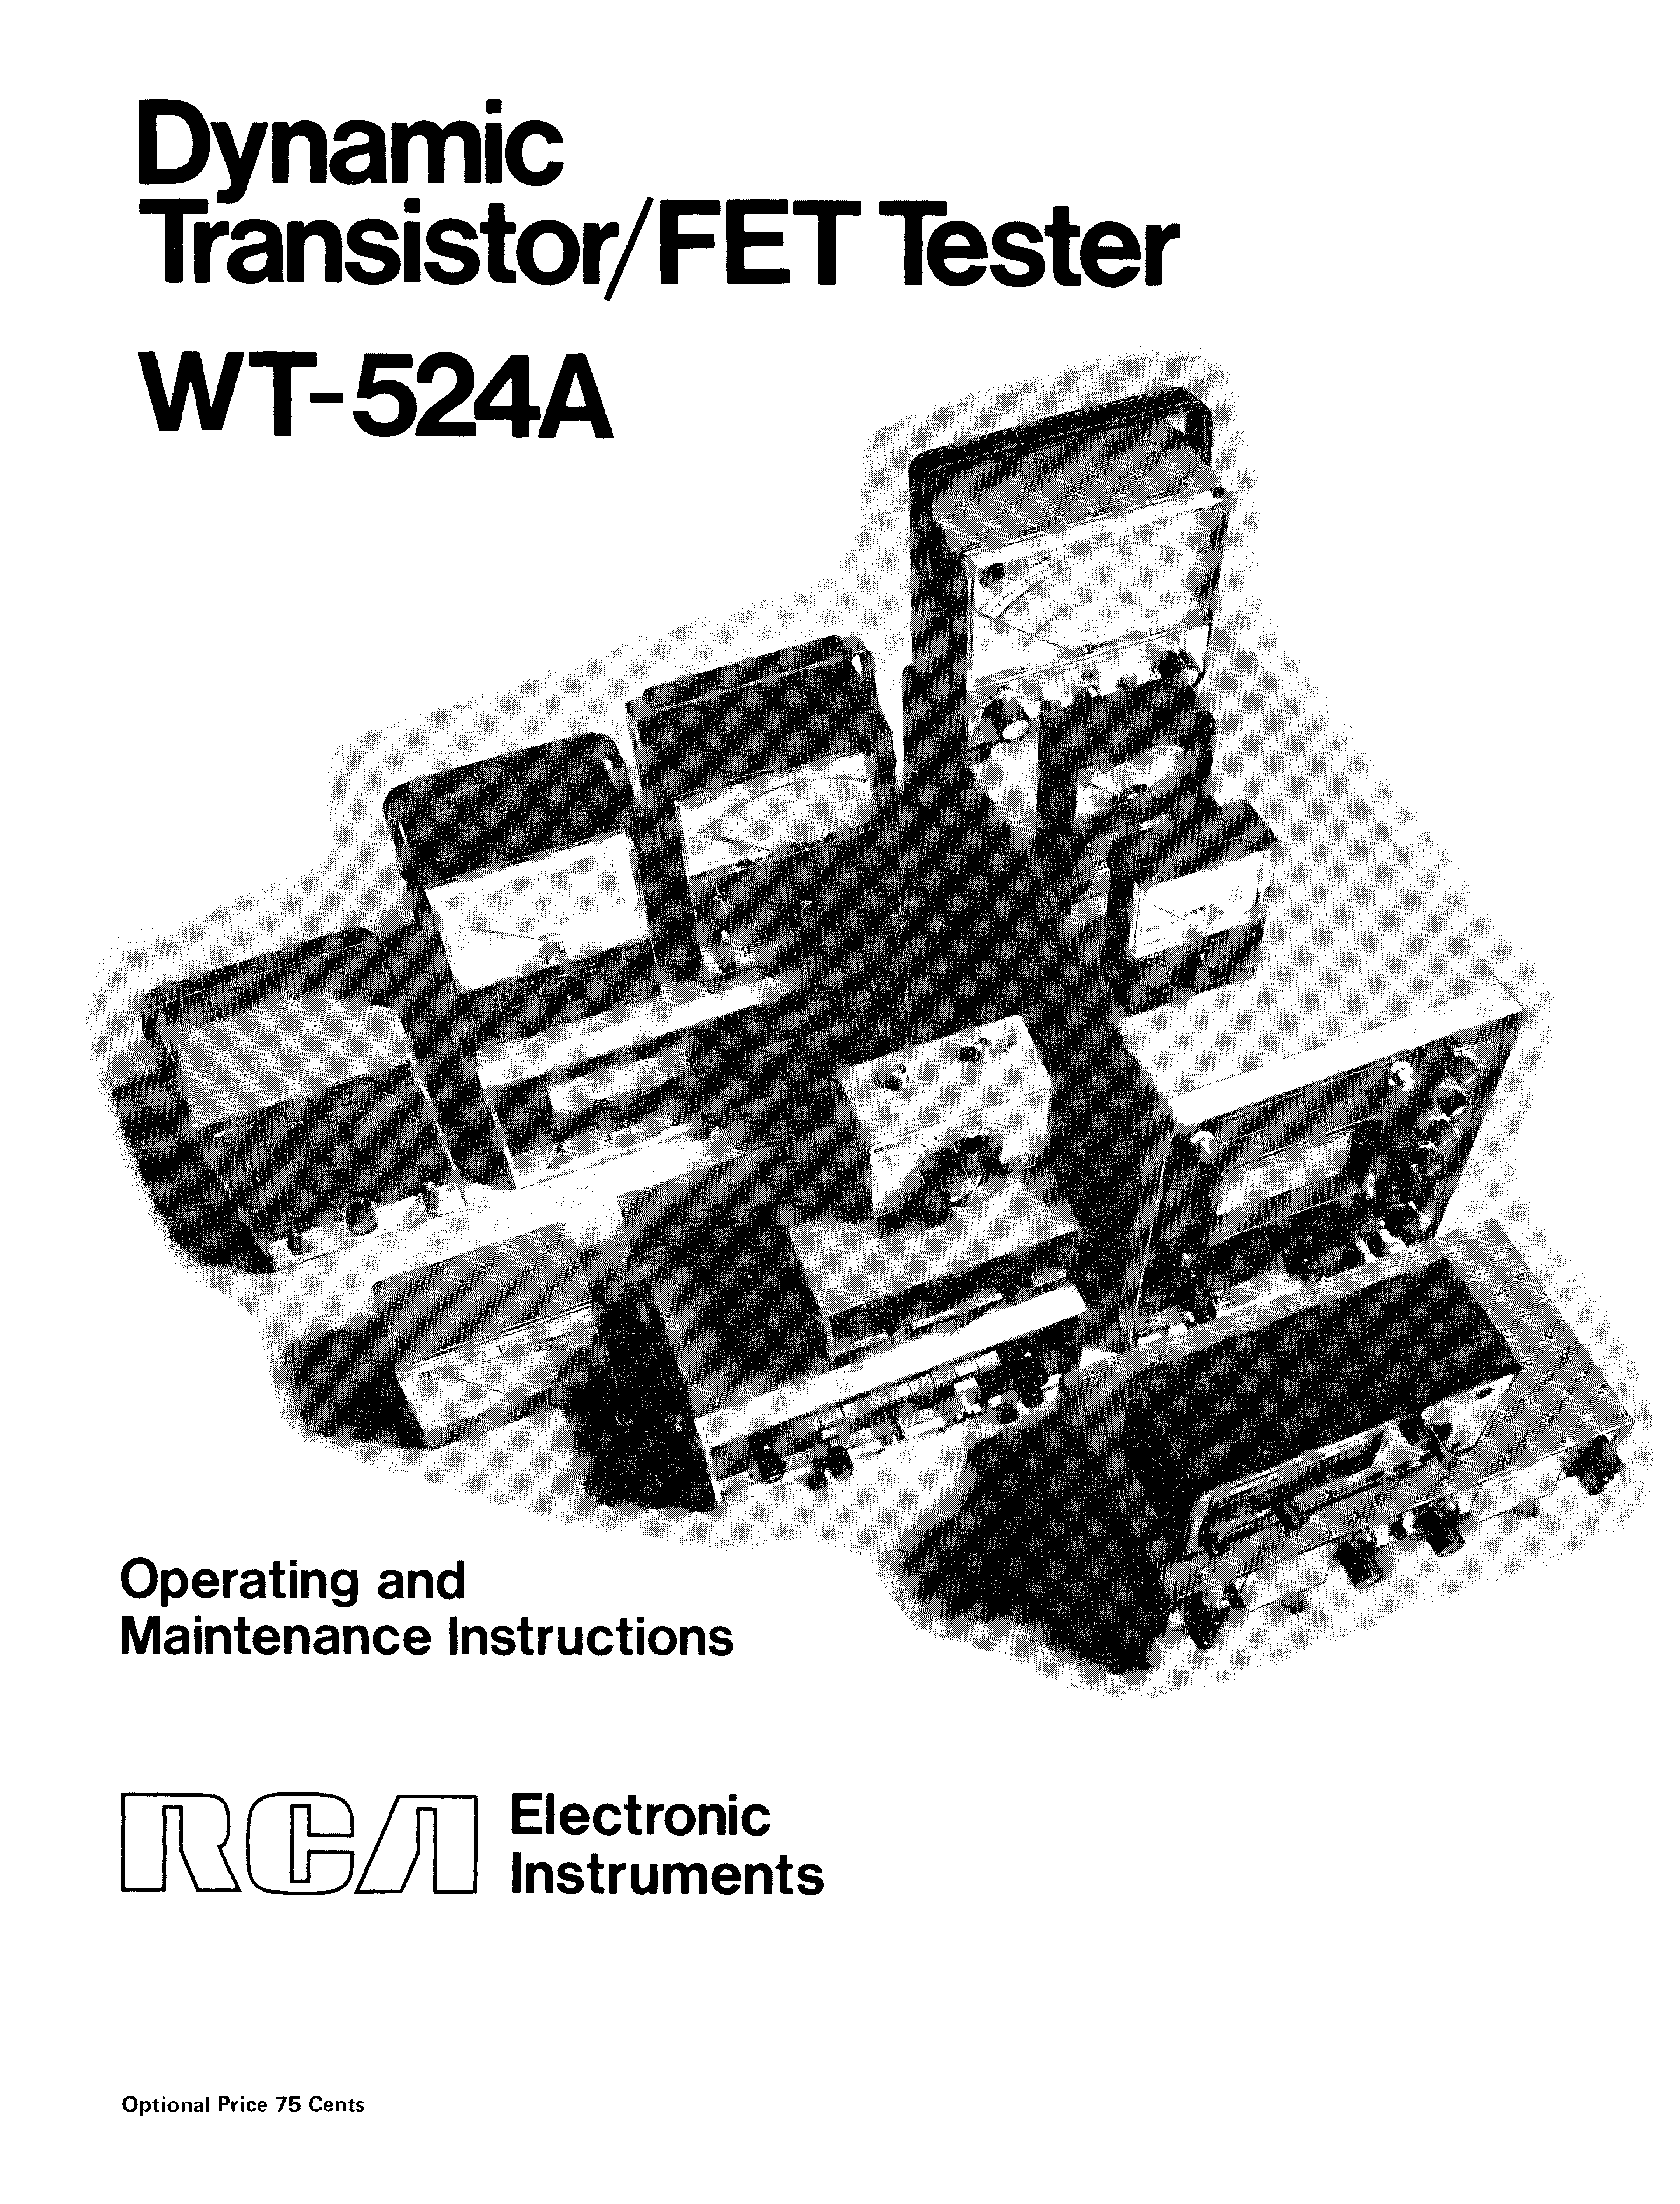 RCA WT-524A DYNAMIC TRANSISTOR FET TESTER service manual (1st page)